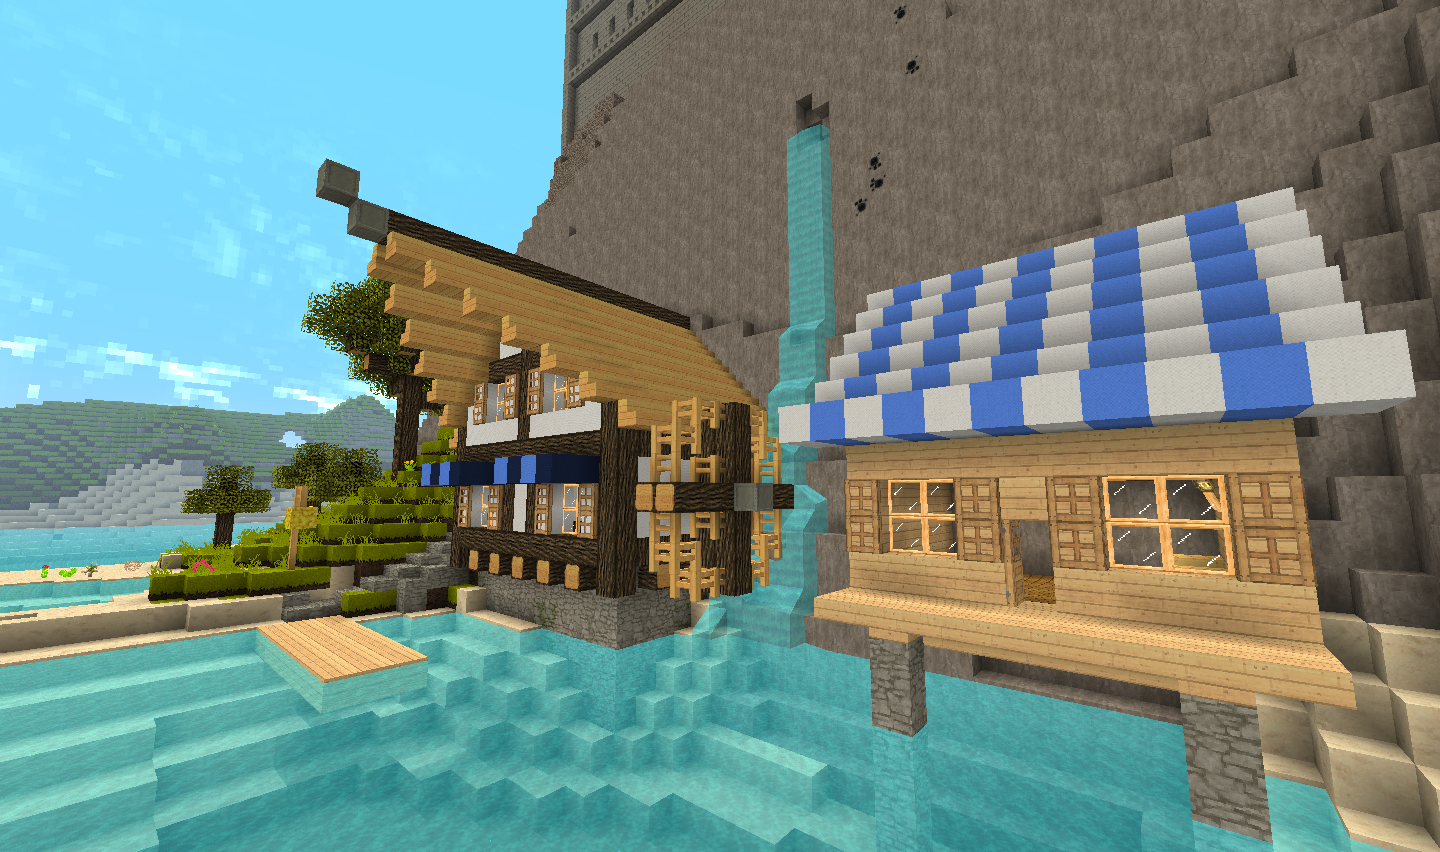 http://azminecraft.info/wp-content/uploads/2014/05/4ea57__Willpack-HD-Texture-Pack-1.png